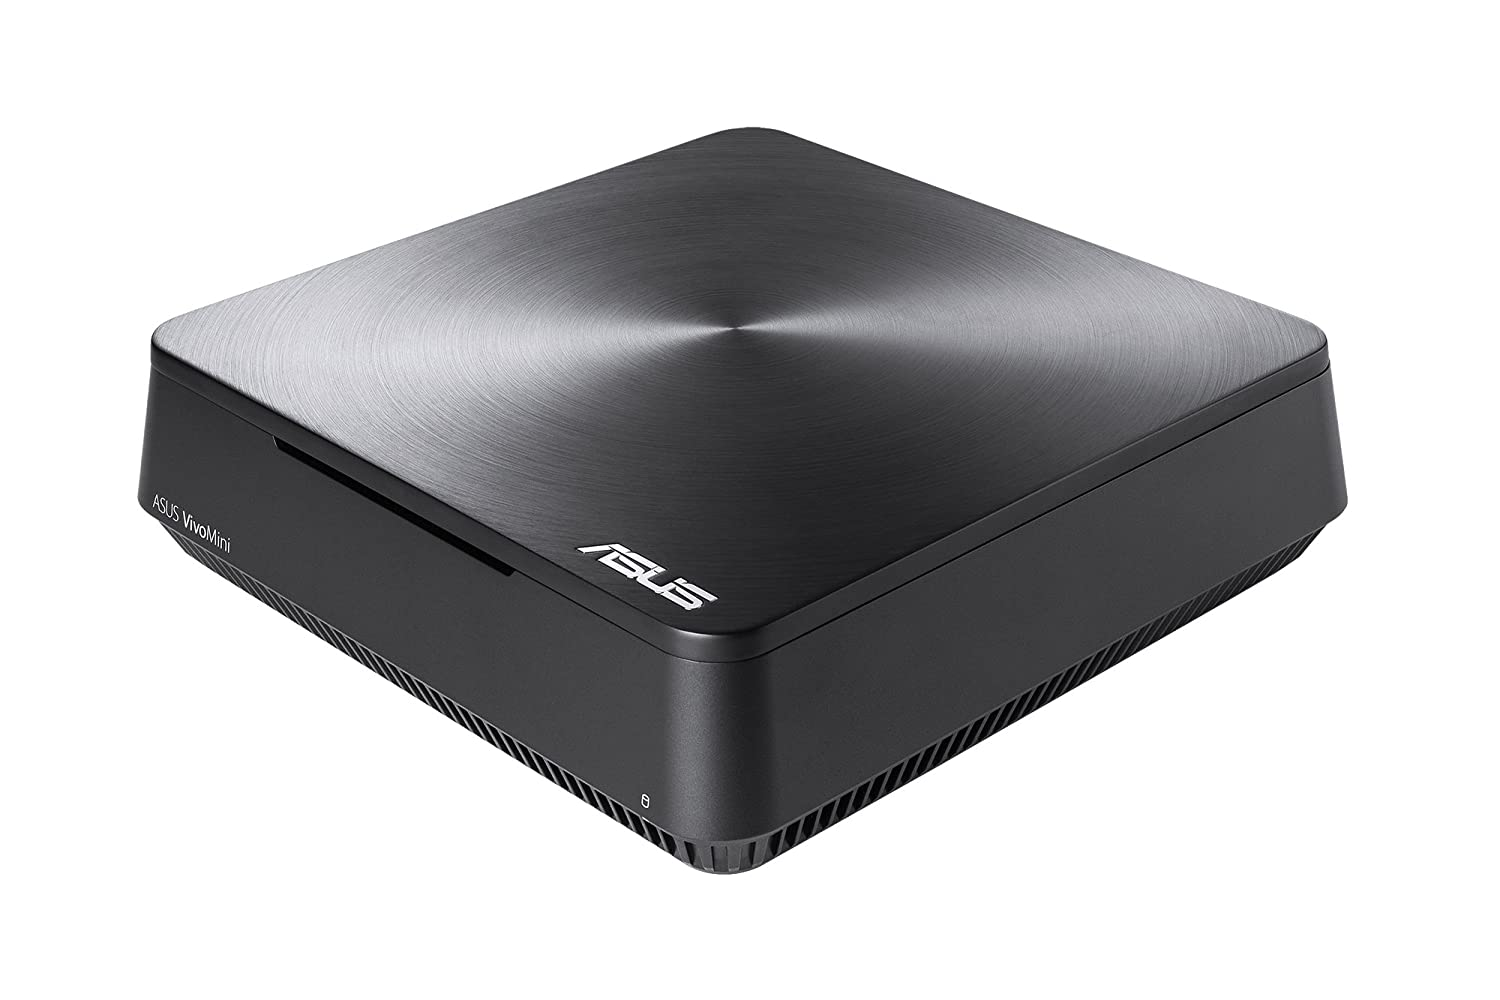 Best Barebone Mini PC: Top Mini PC desktops barebone – Mini PC barebone reviews